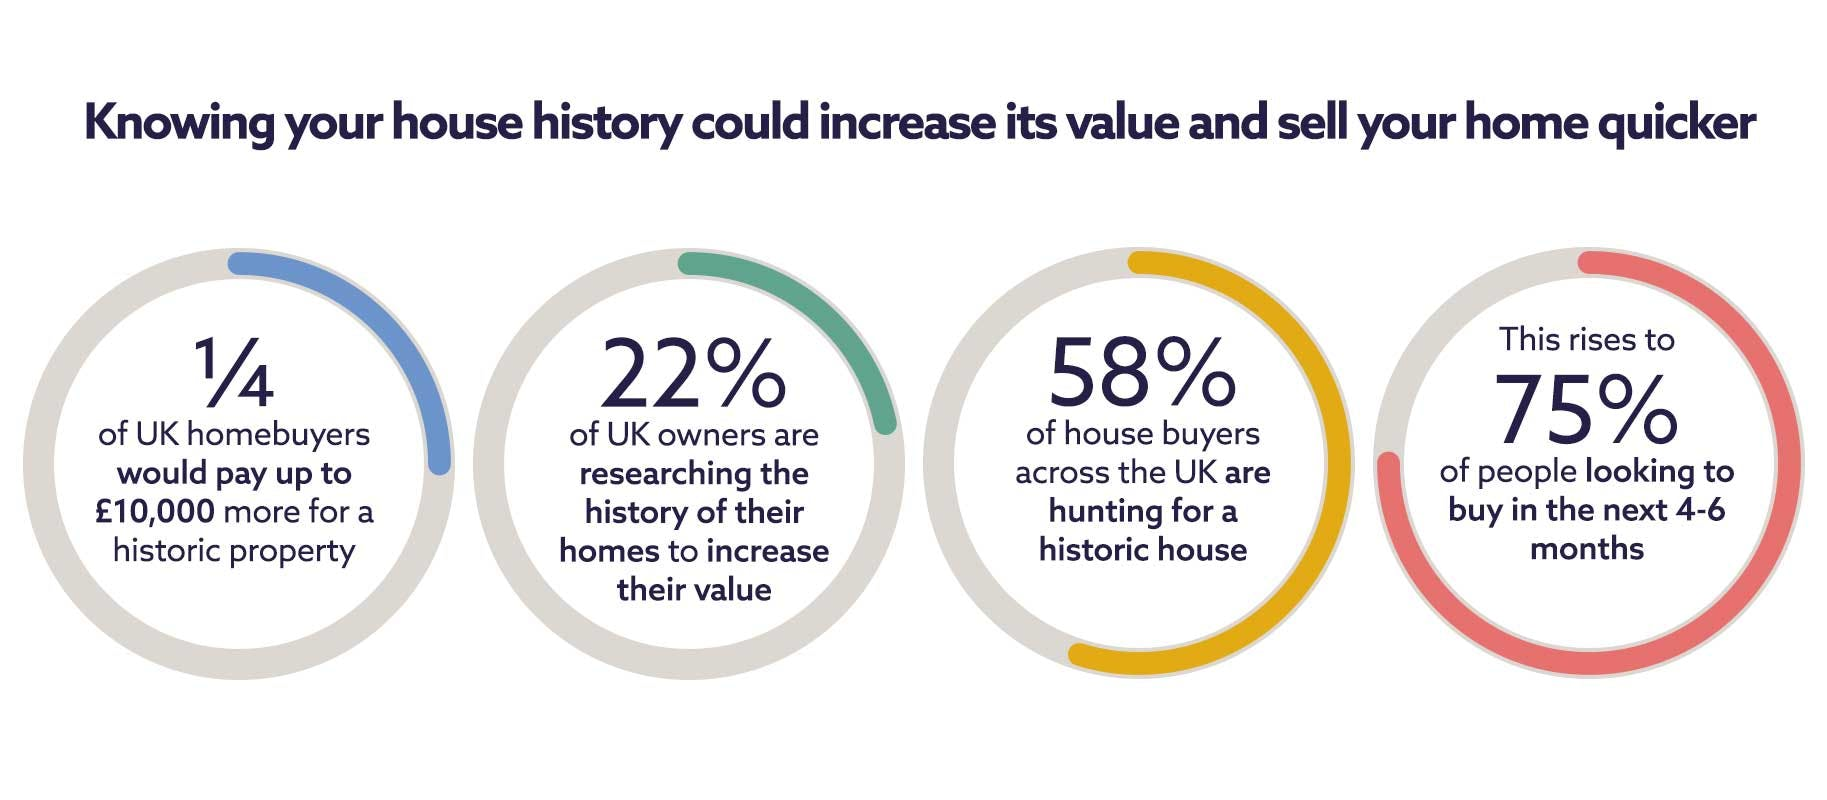 Value of historic houses in the UK